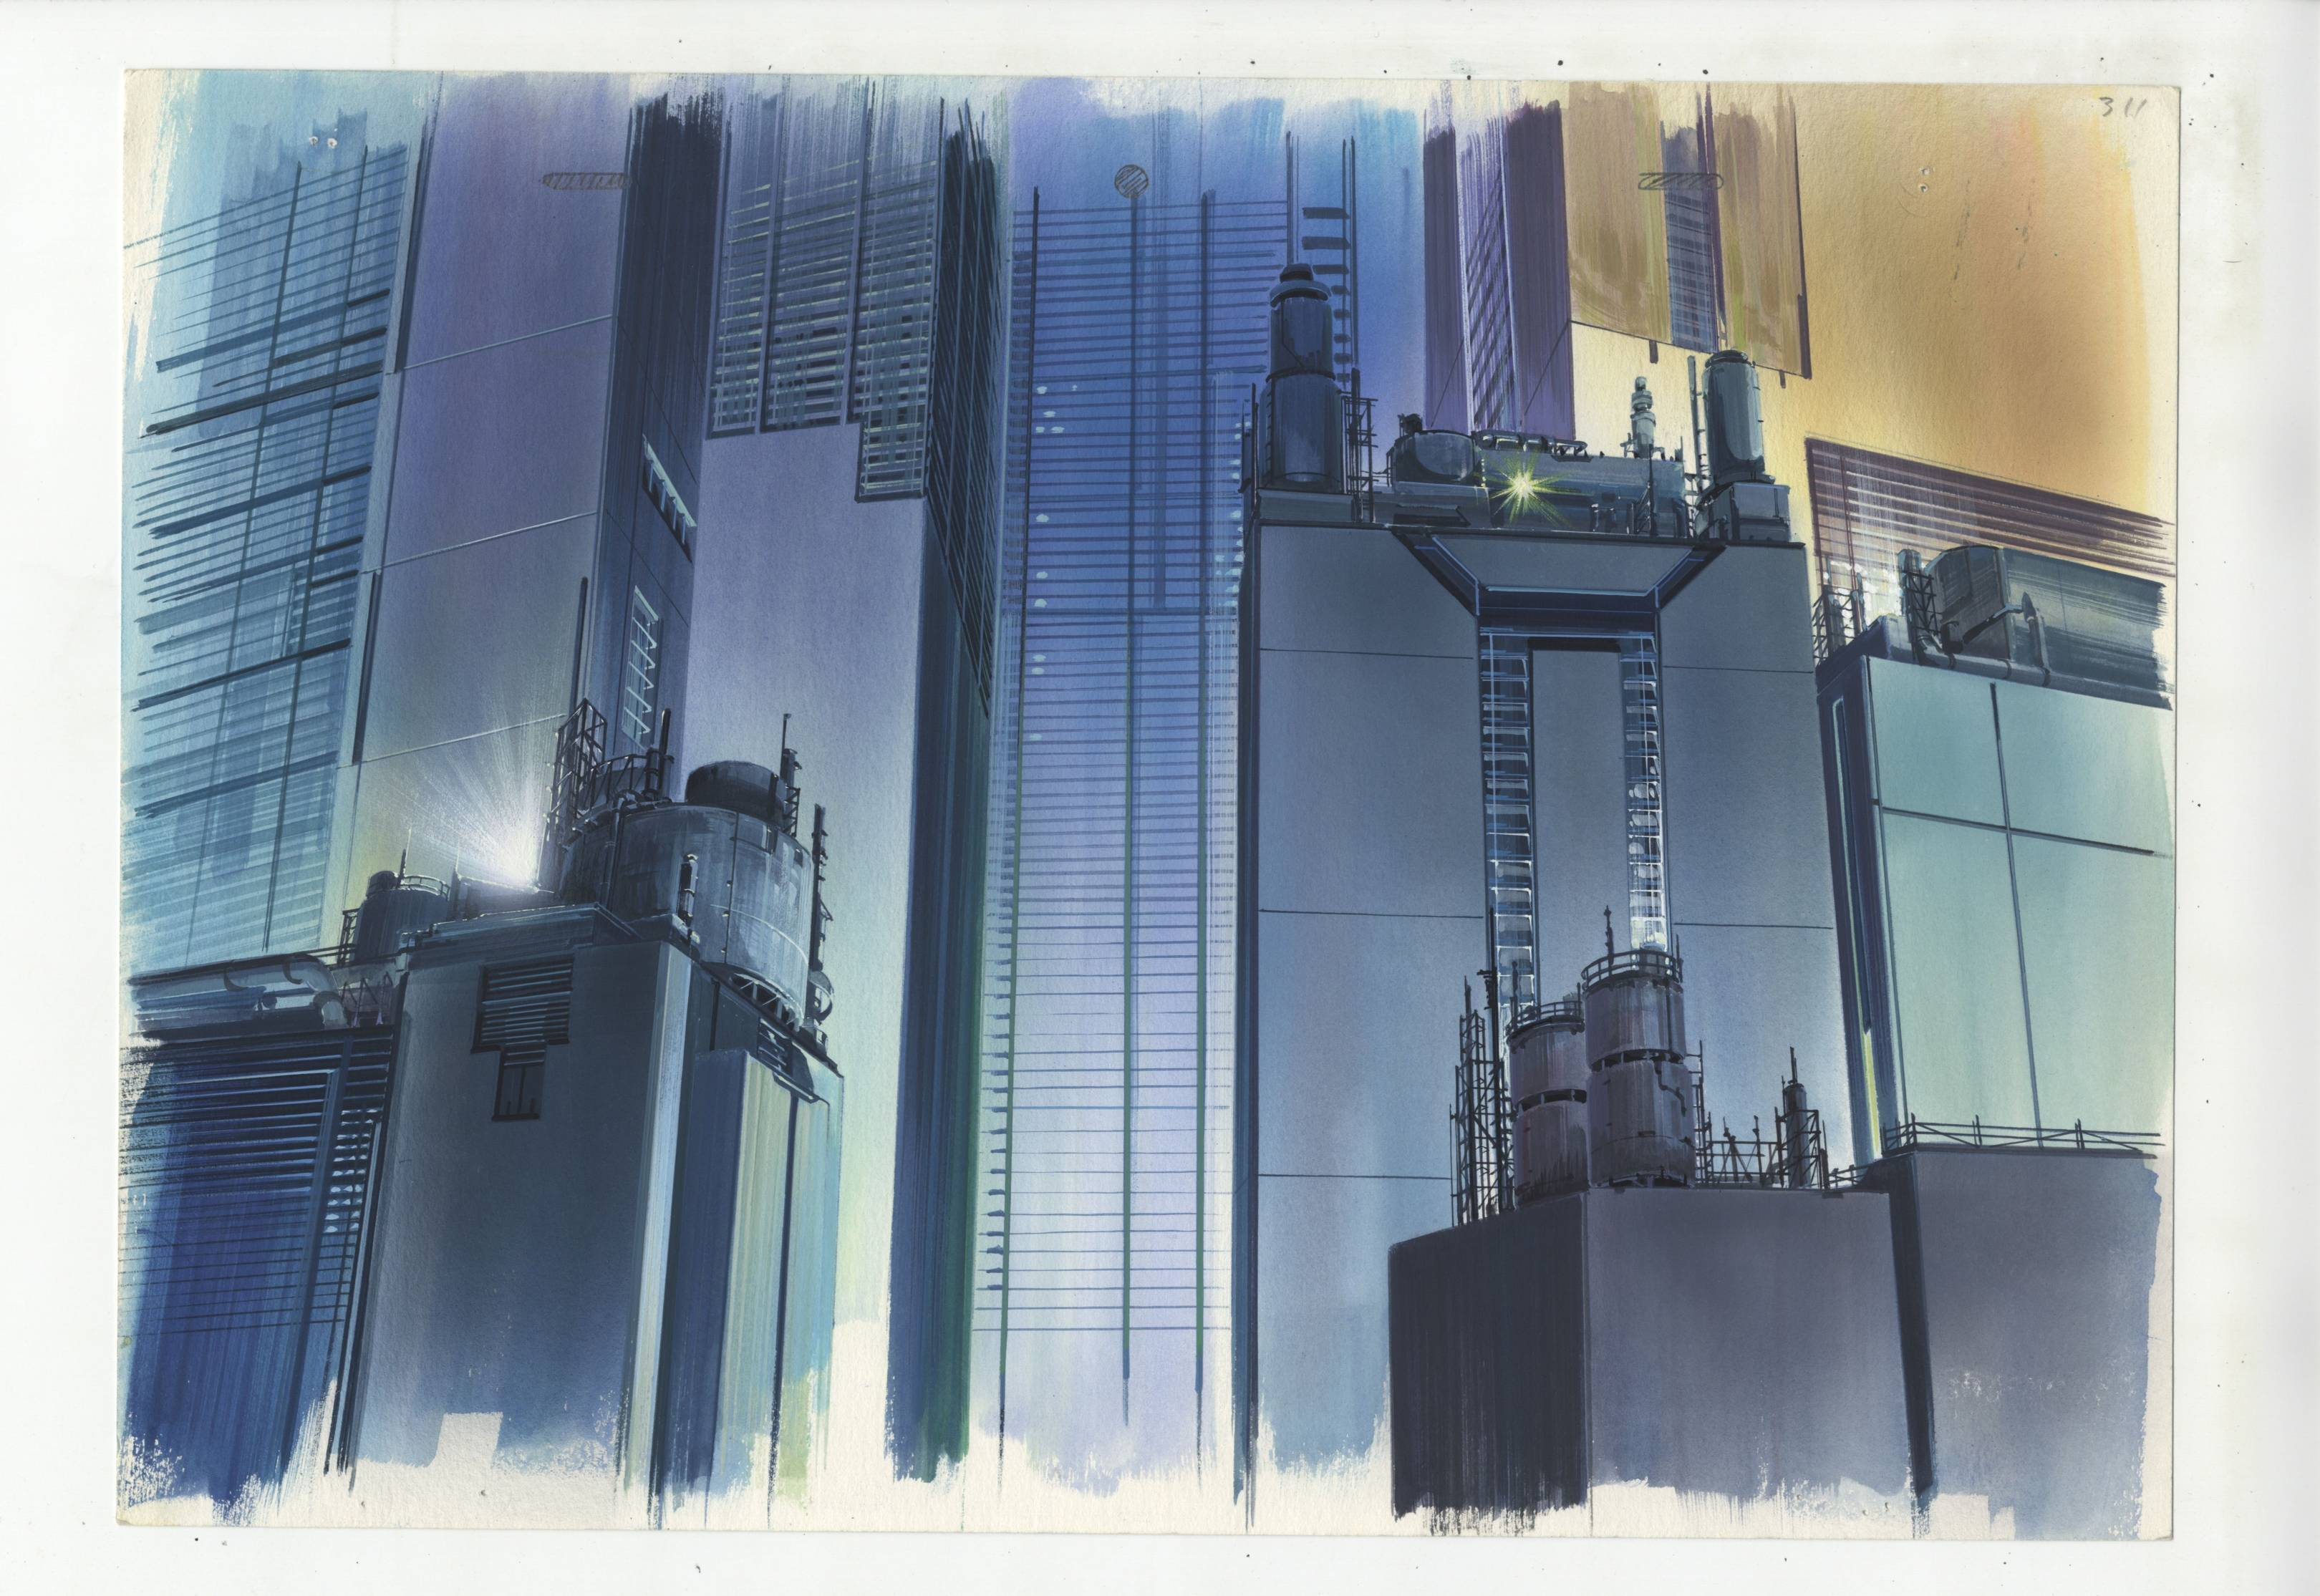 Ghost In The Shell Original Artwork On Display Wired Uk